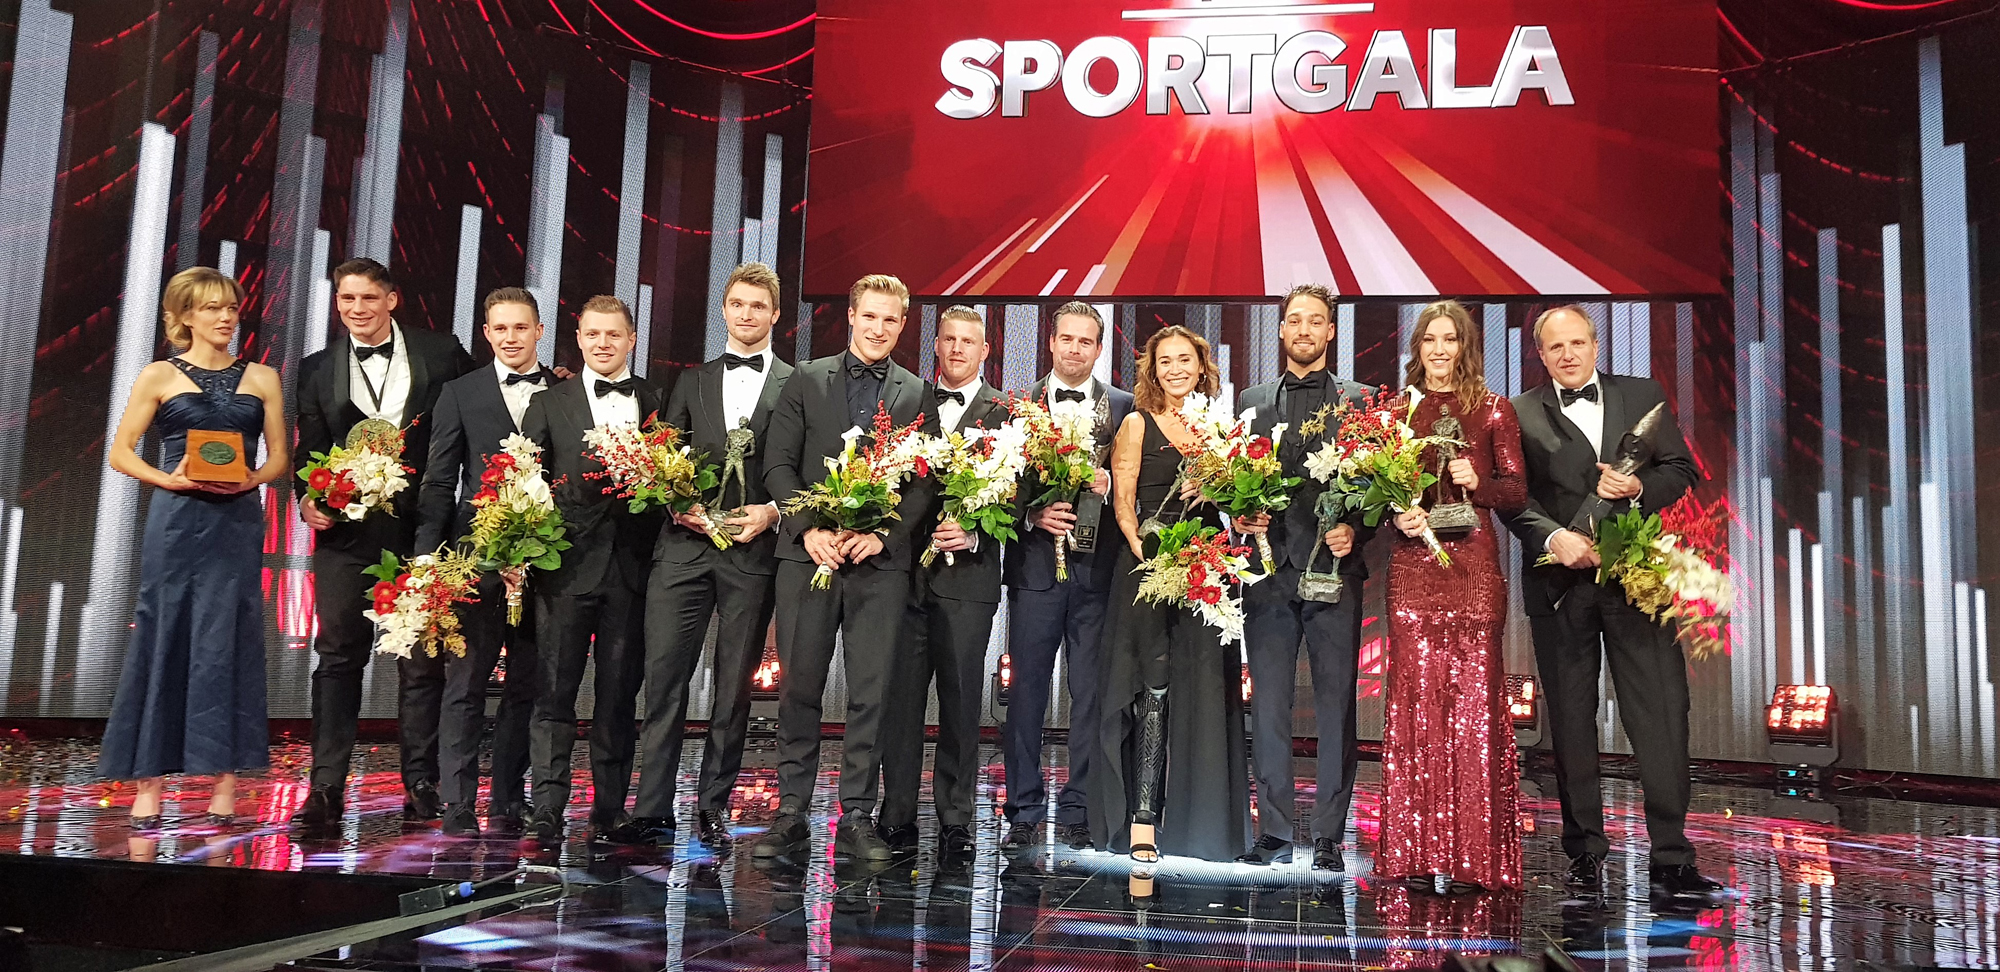 Nominaties NOS | NOC*NSF Sportgala 2019 bekend